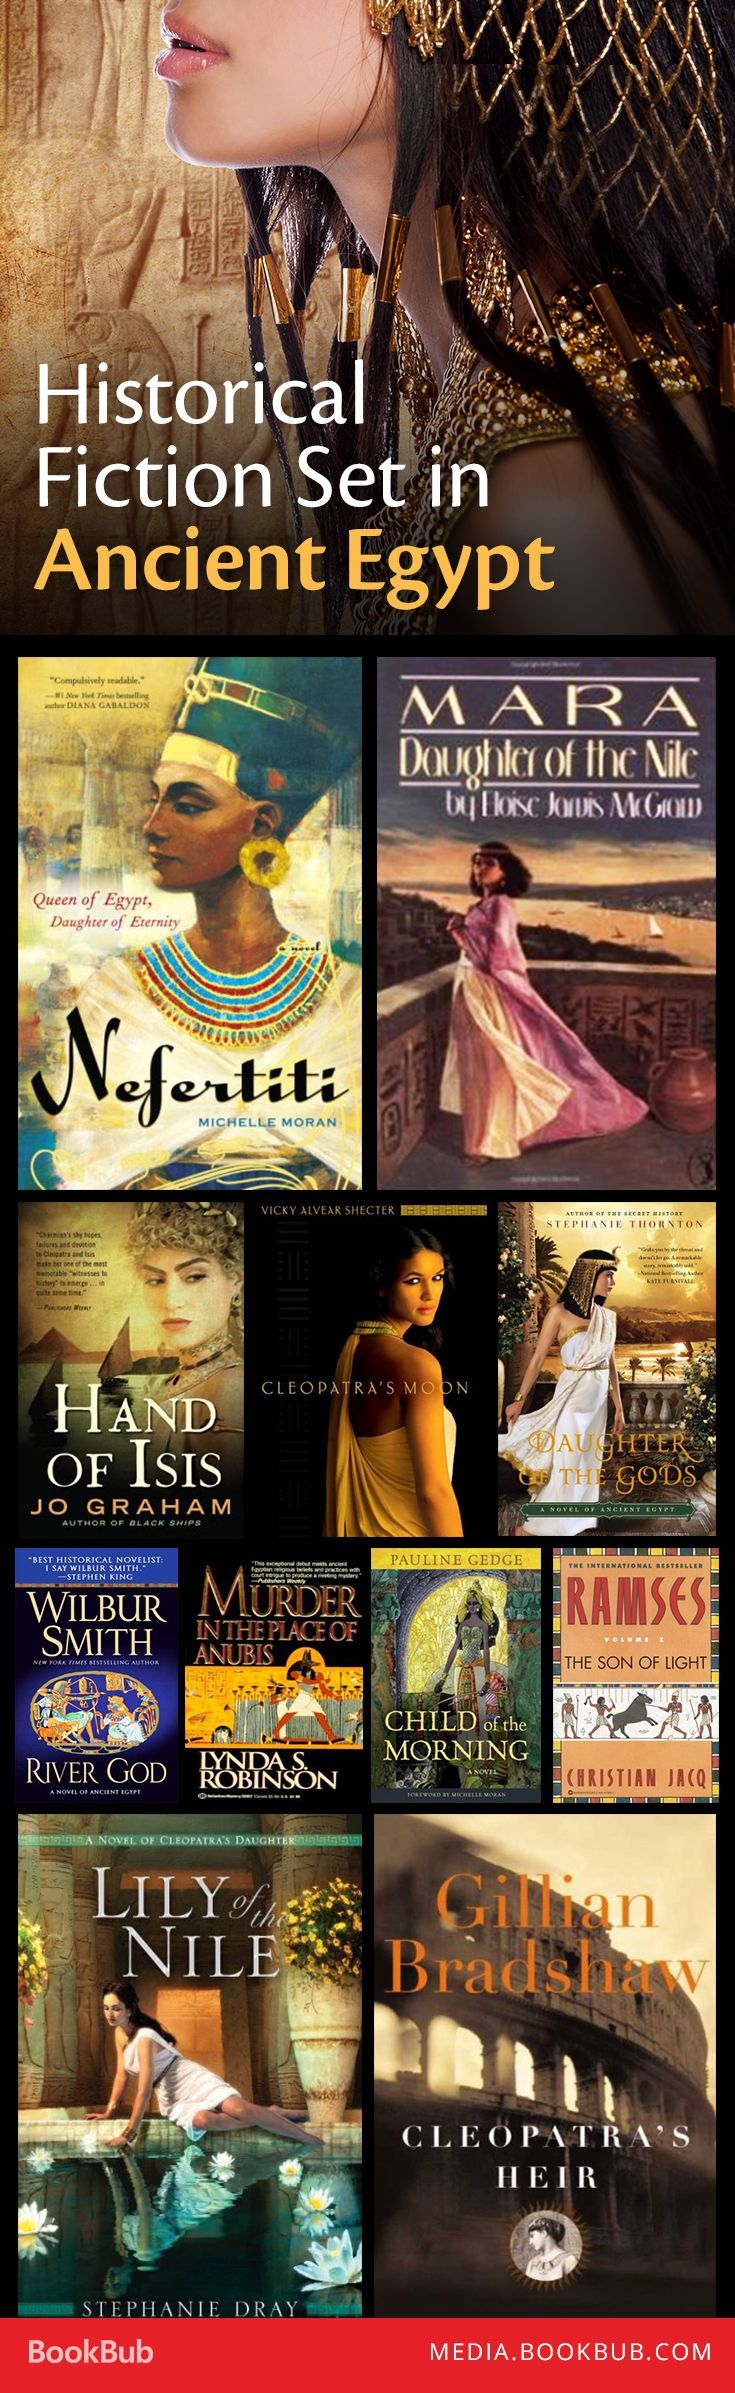 15 historical fiction books set in Ancient Egypt, including Nefertiti by Michelle Moran.